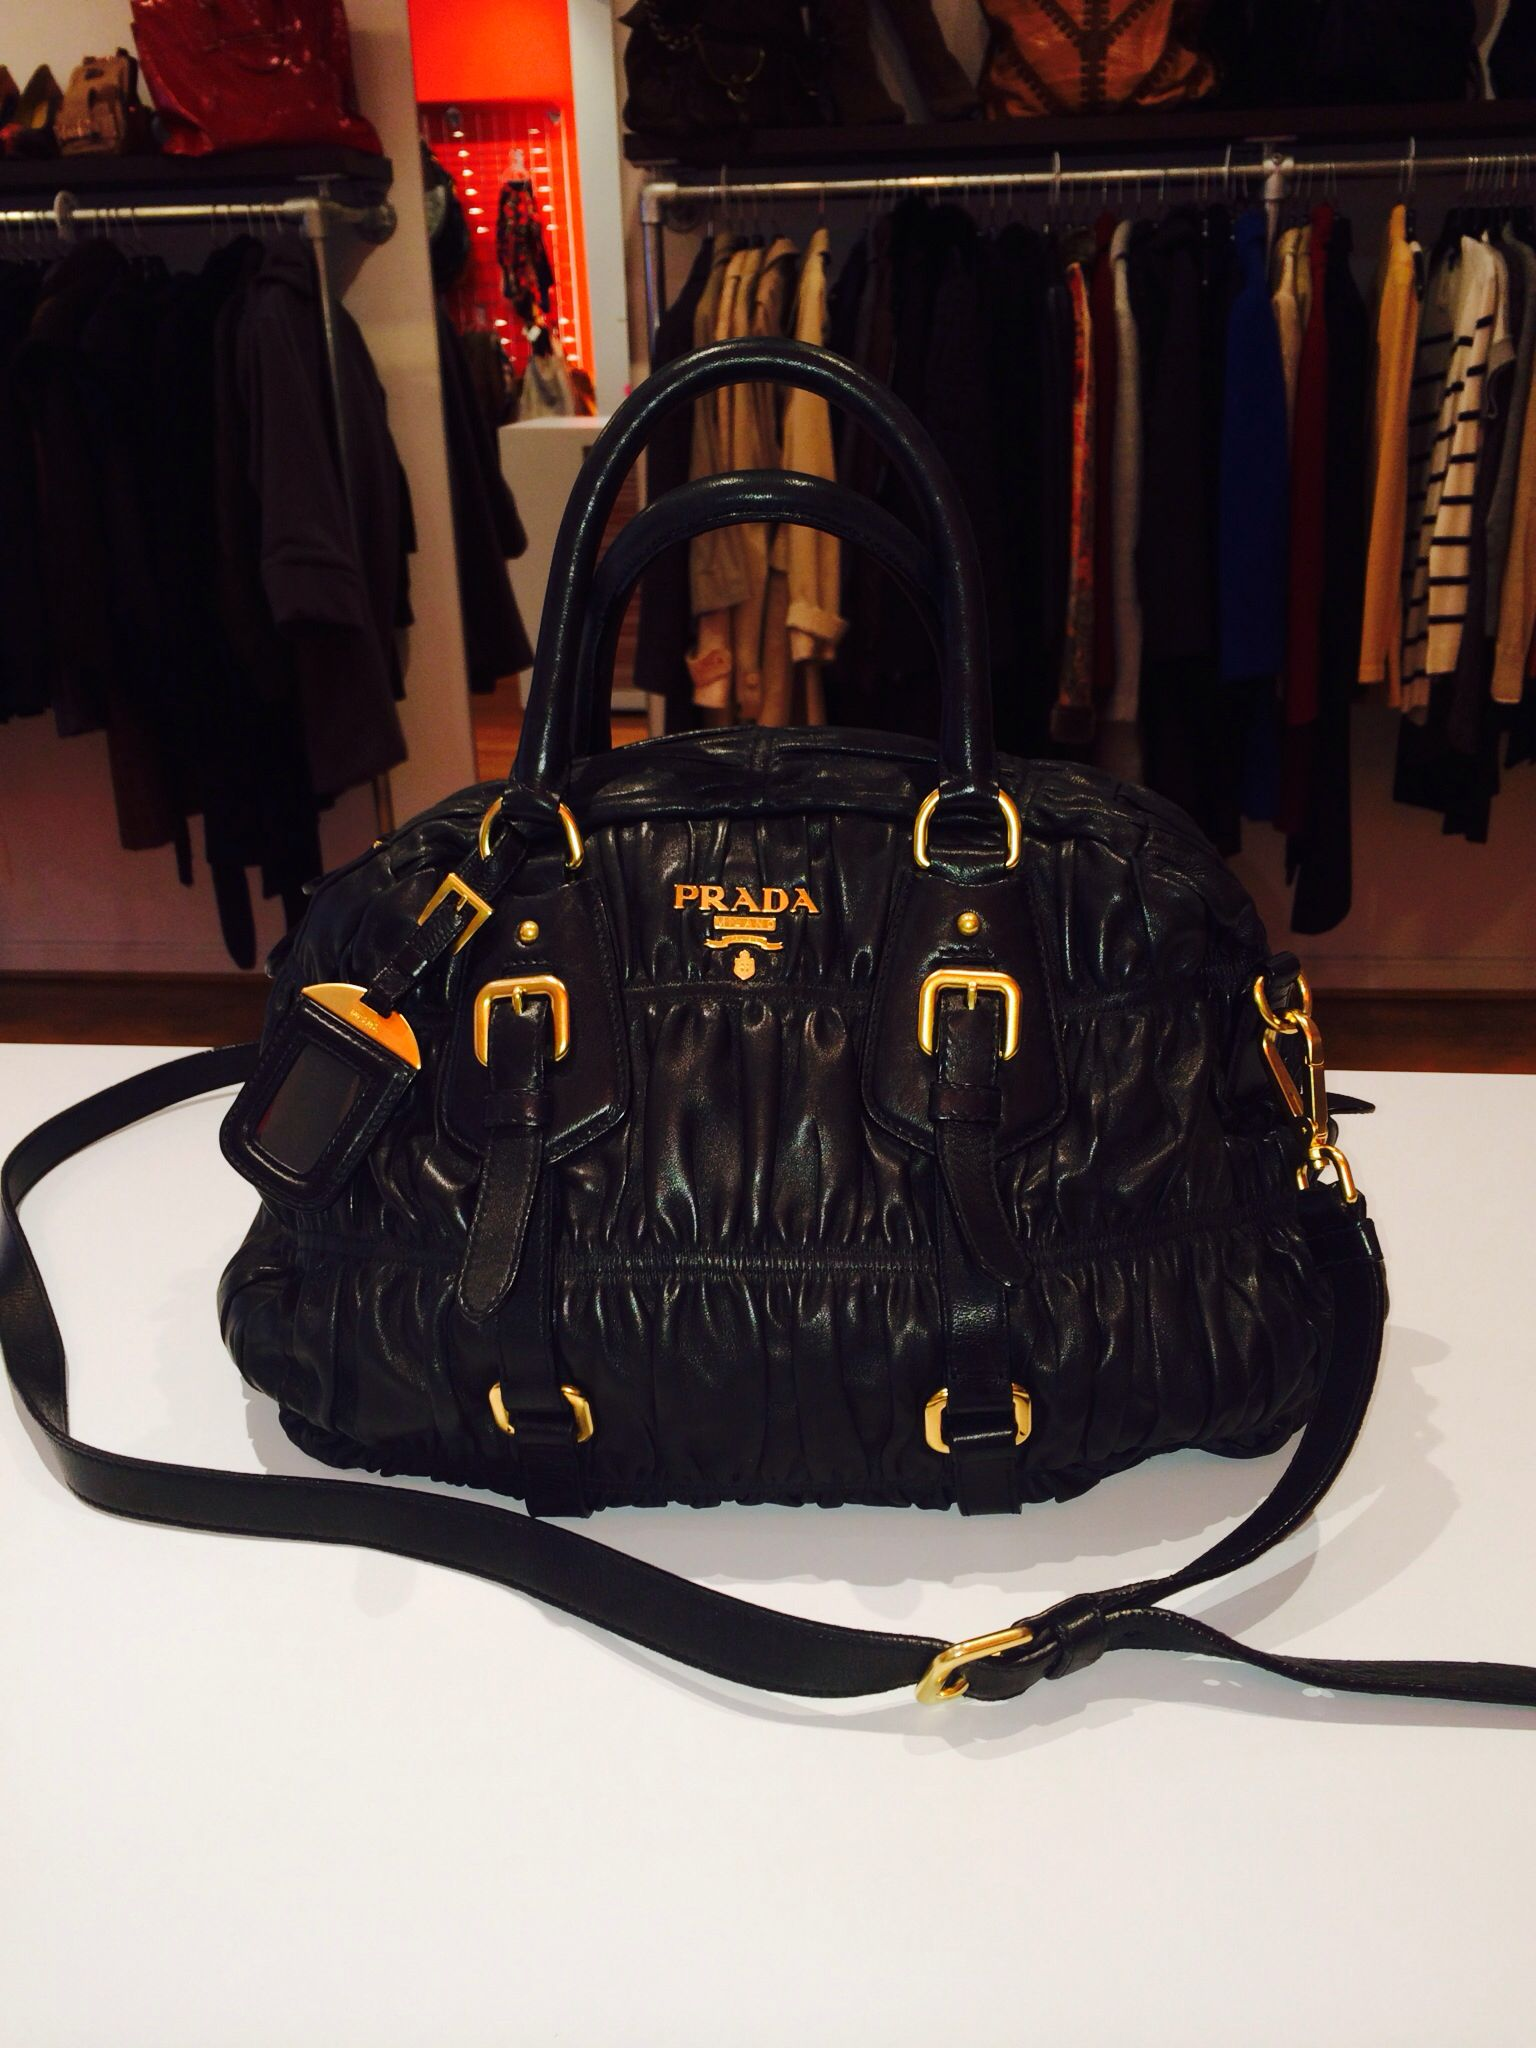 1d24973e283d Prada napa gaufre leather bowler large convertible bag available now at  Reddz Trading Georgetown